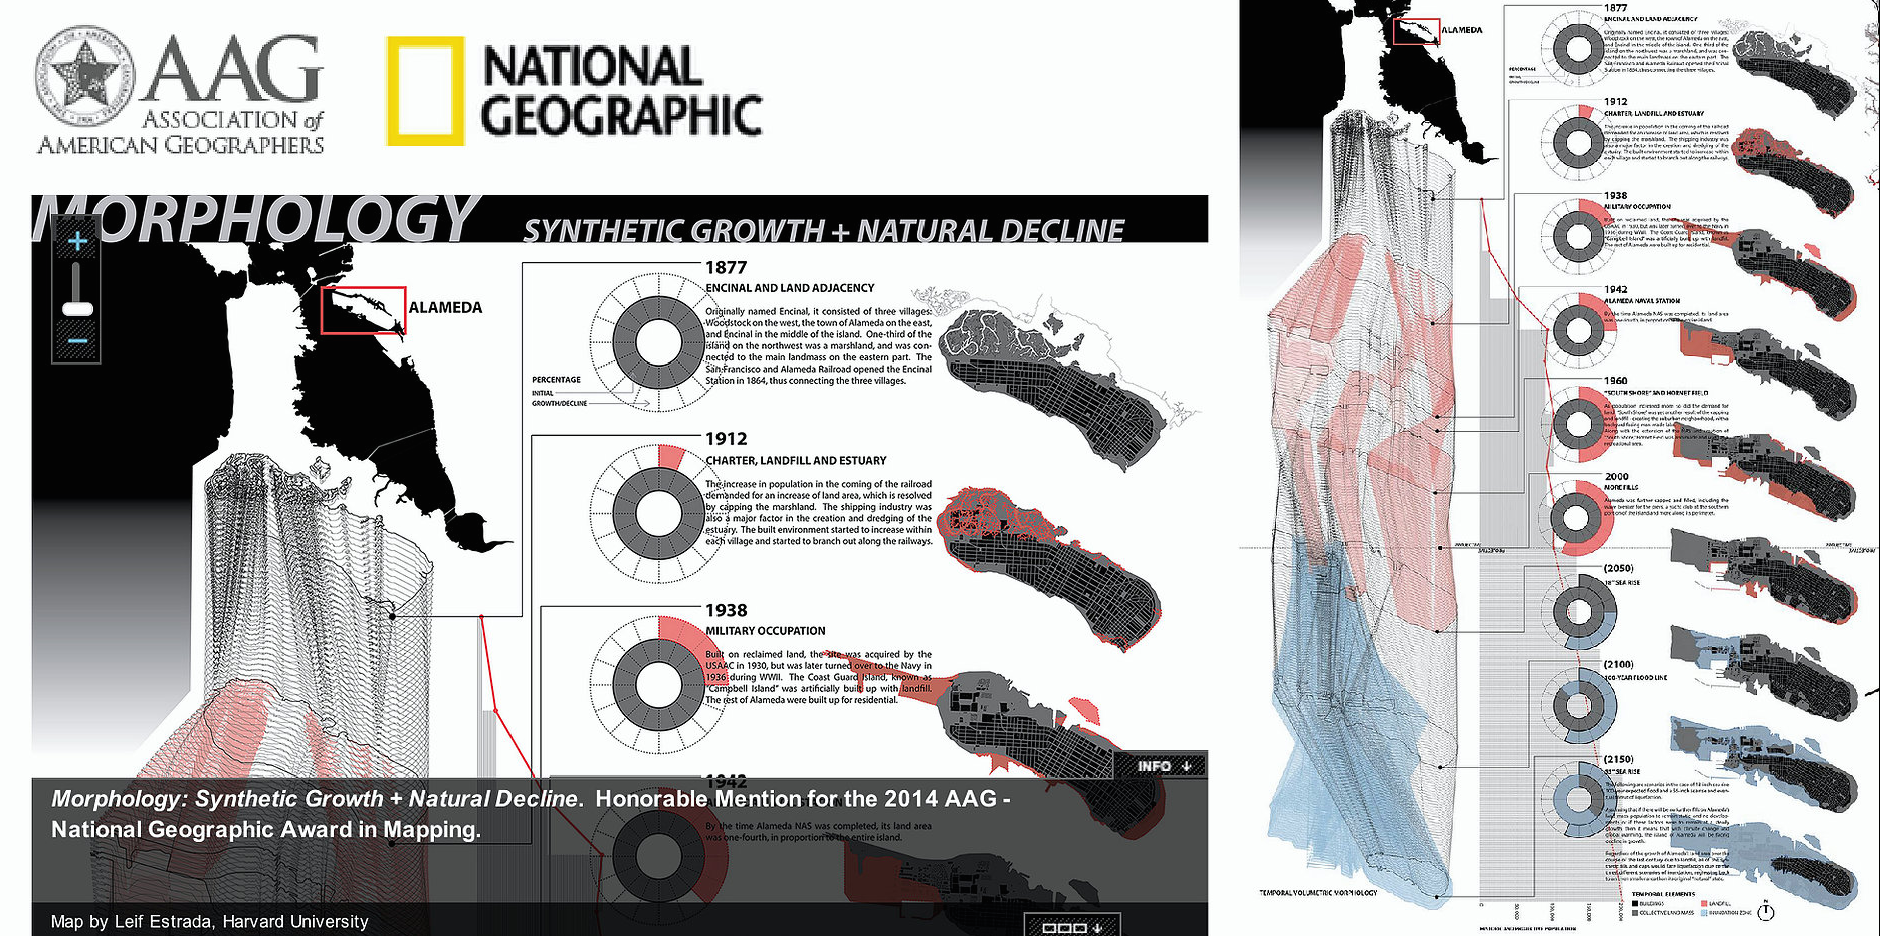 2014 National Geographic Award in Mapping (NatGeo)